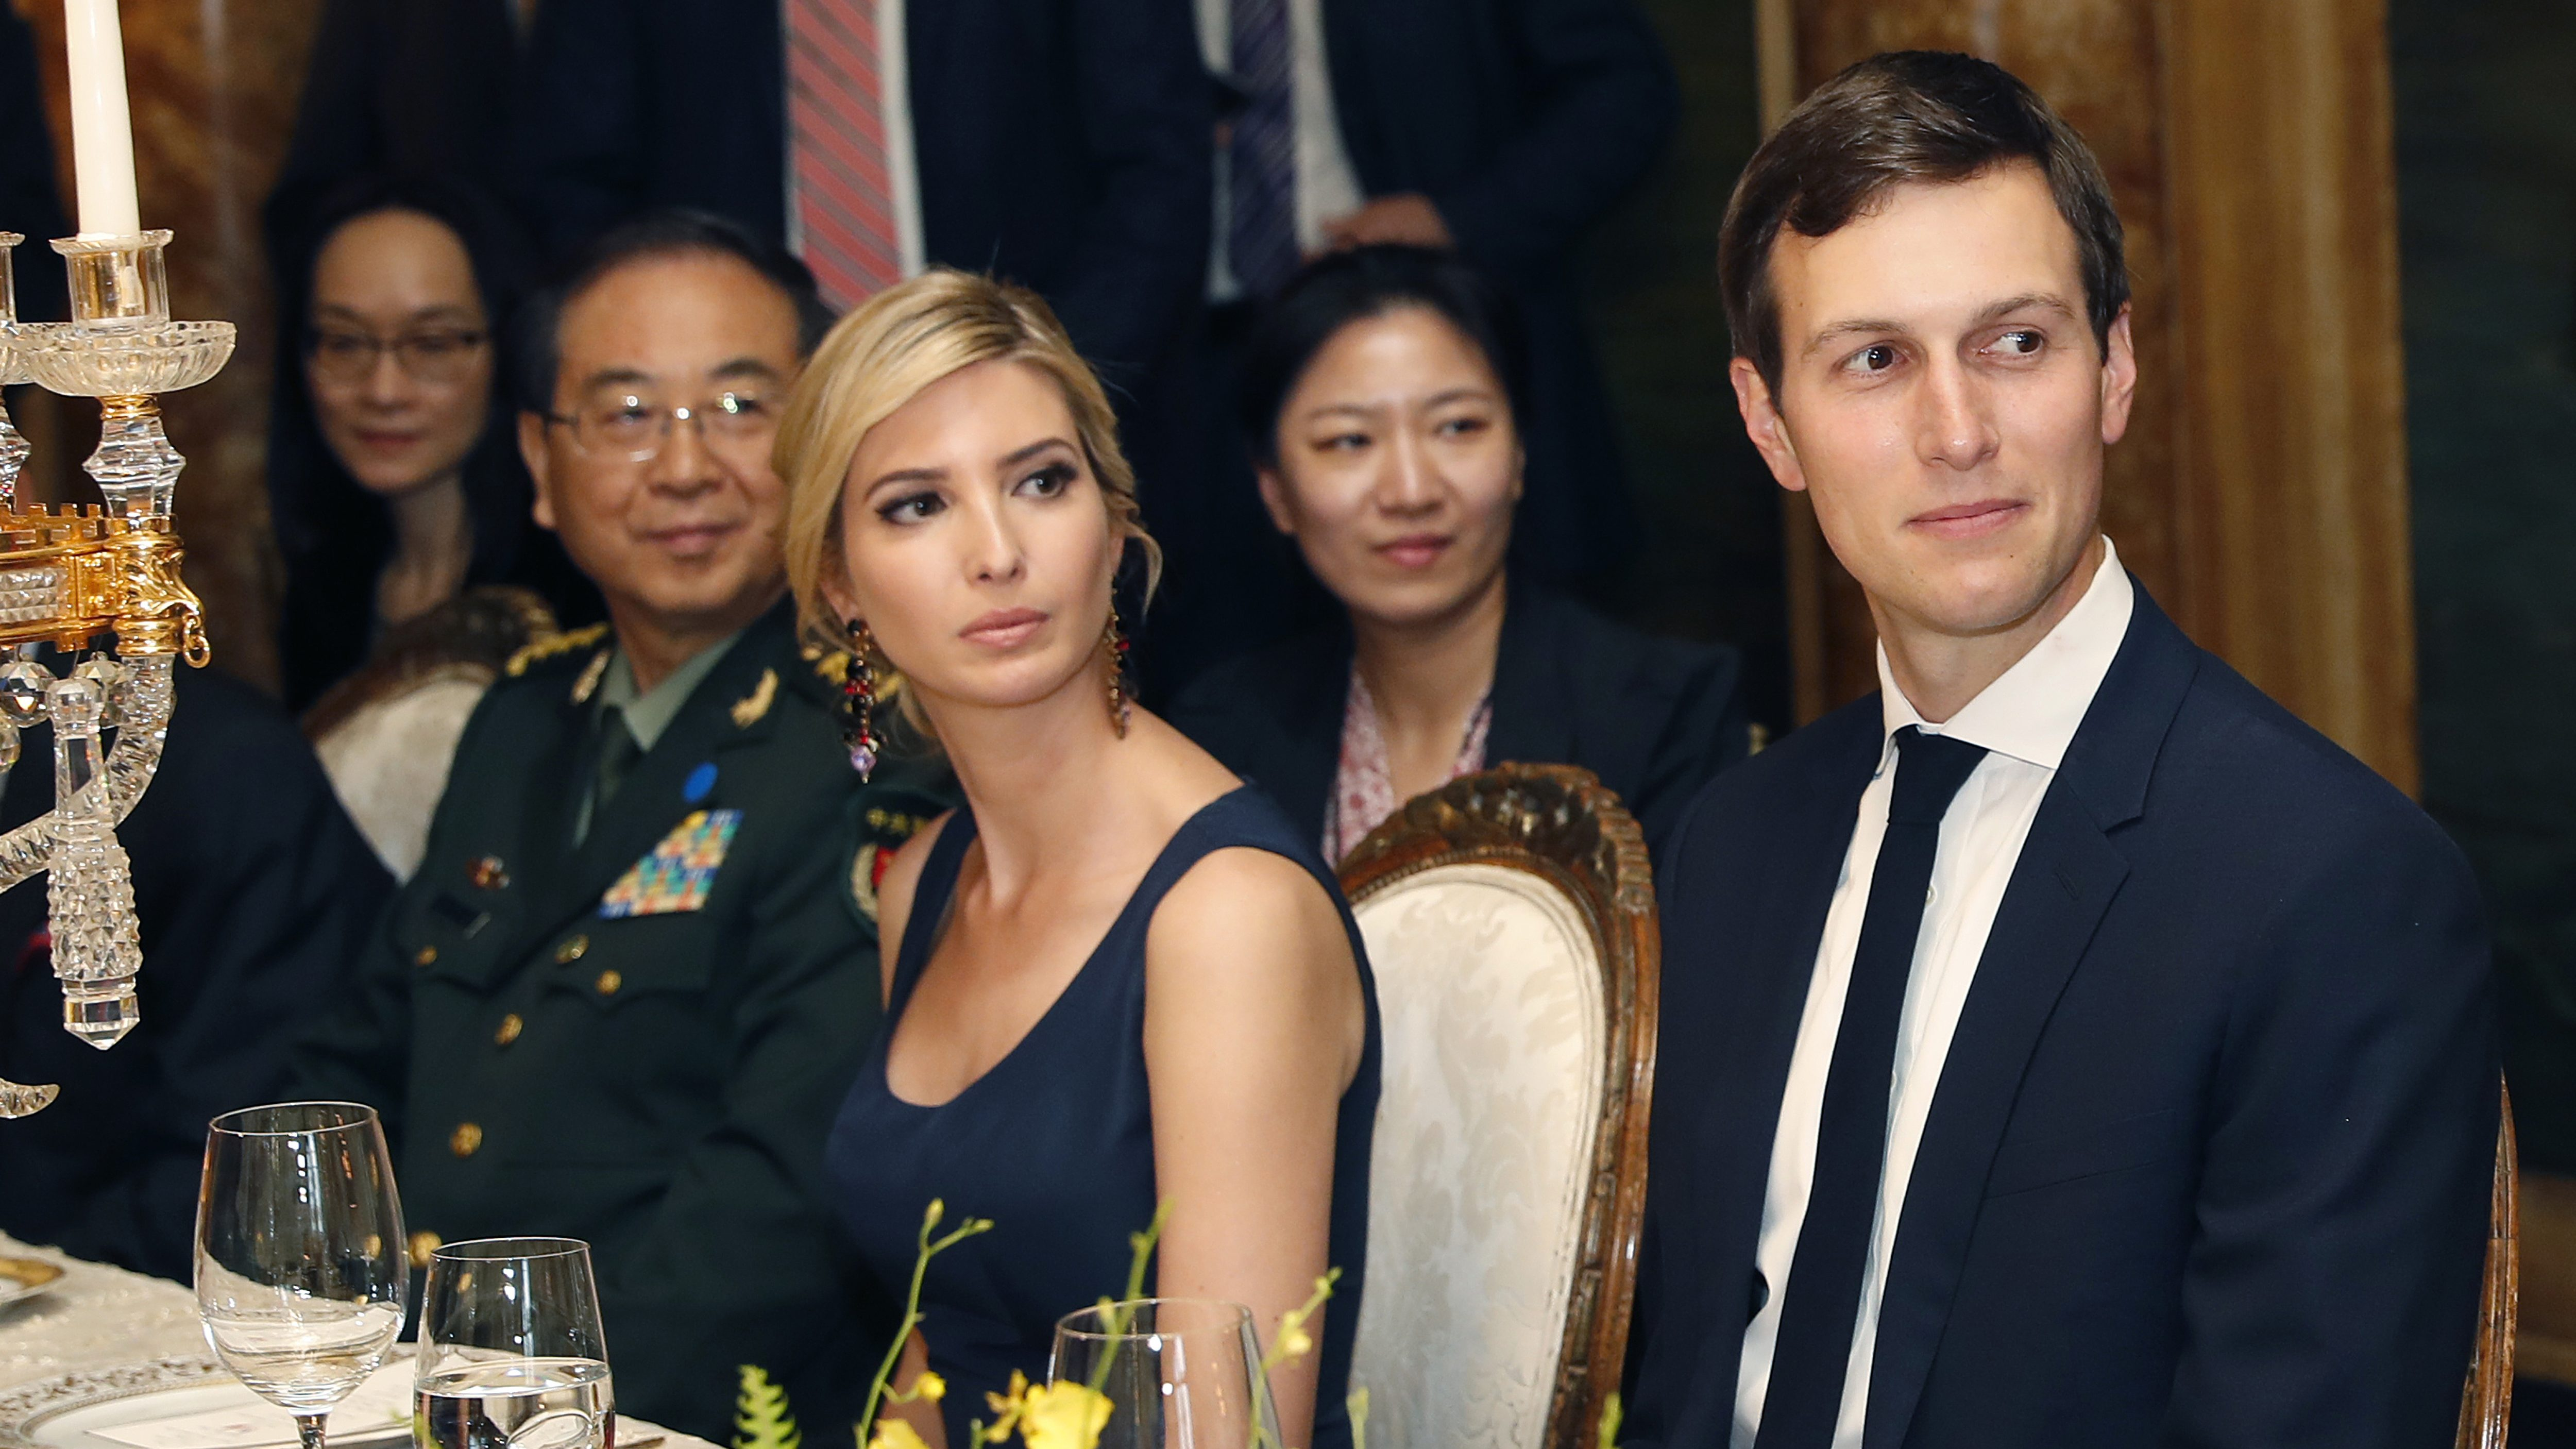 FILE - In this Thursday, April 6, 2017, file photo, Ivanka Trump, center, daughter and assistant to U.S President Donald Trump, is seated with her husband, White House senior adviser Jared Kushner, right, during a dinner with President Donald Trump and Chinese President Xi Jinping, at Mar-a-Lago, in Palm Beach, Fla. China has granted provisional approval for four additional Ivanka Trump trademarks since April 20, and her brand has continued to seek more intellectual property protection in China, with at least 14 applications filed around the time she took on an official White House role, Chinese public records show. (AP Photo/Alex Brandon, File)